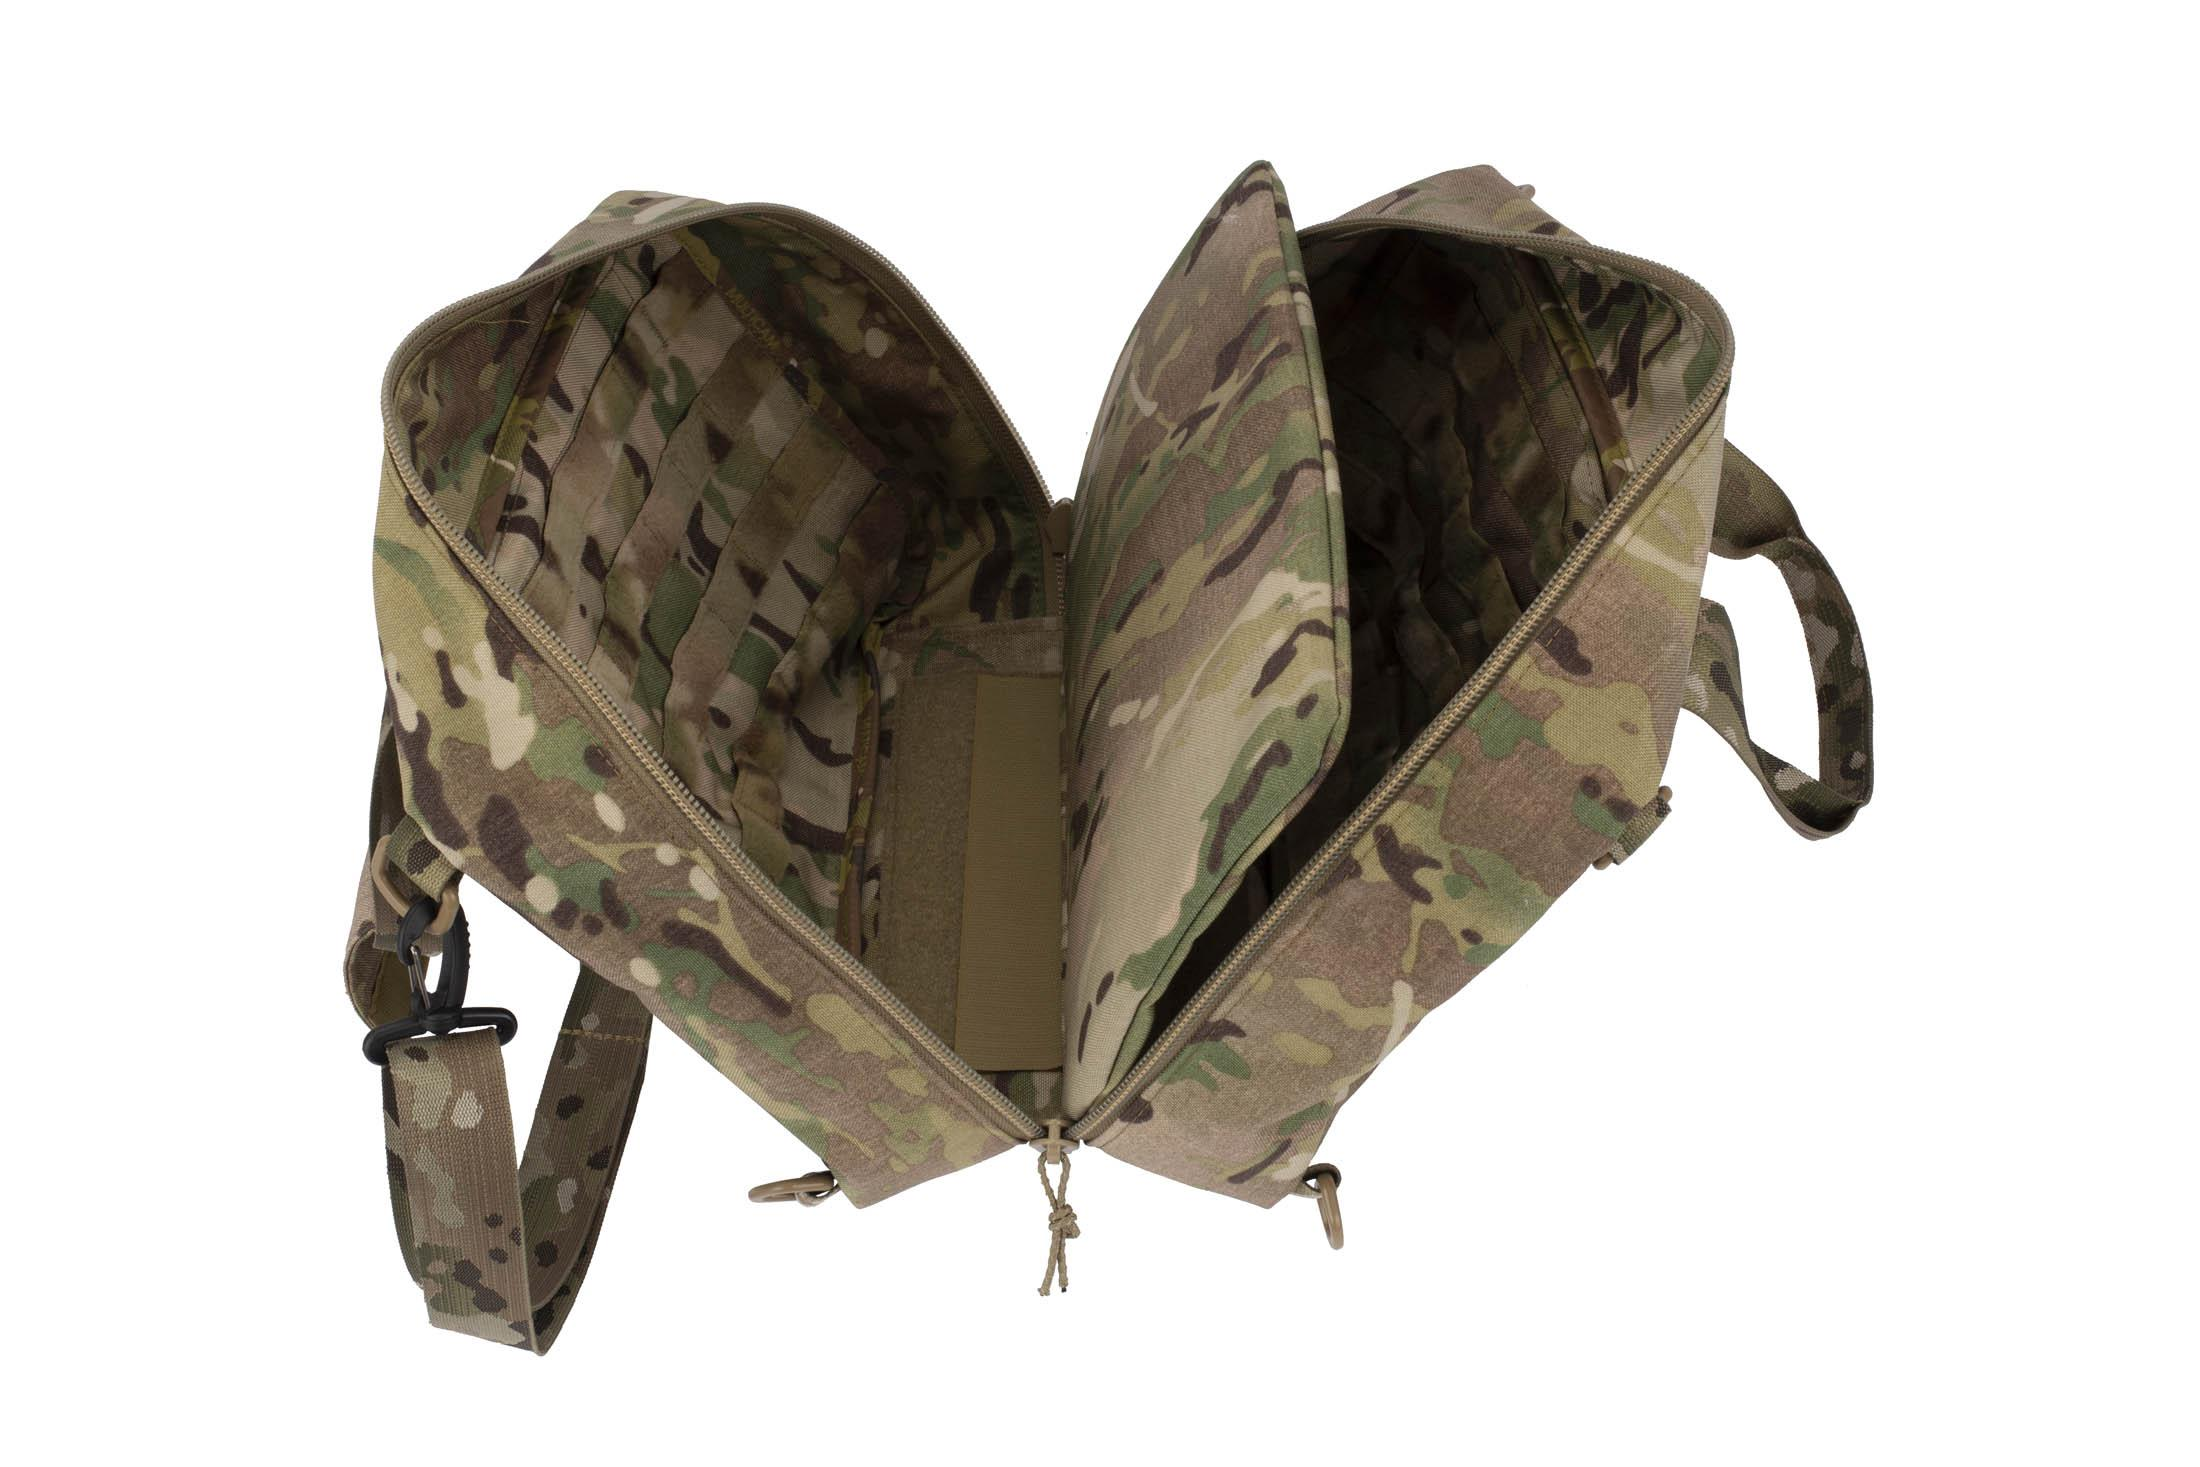 High Speed Gear Range Bag with MultiCam 1000D cordura construction features internal divider for easy organization